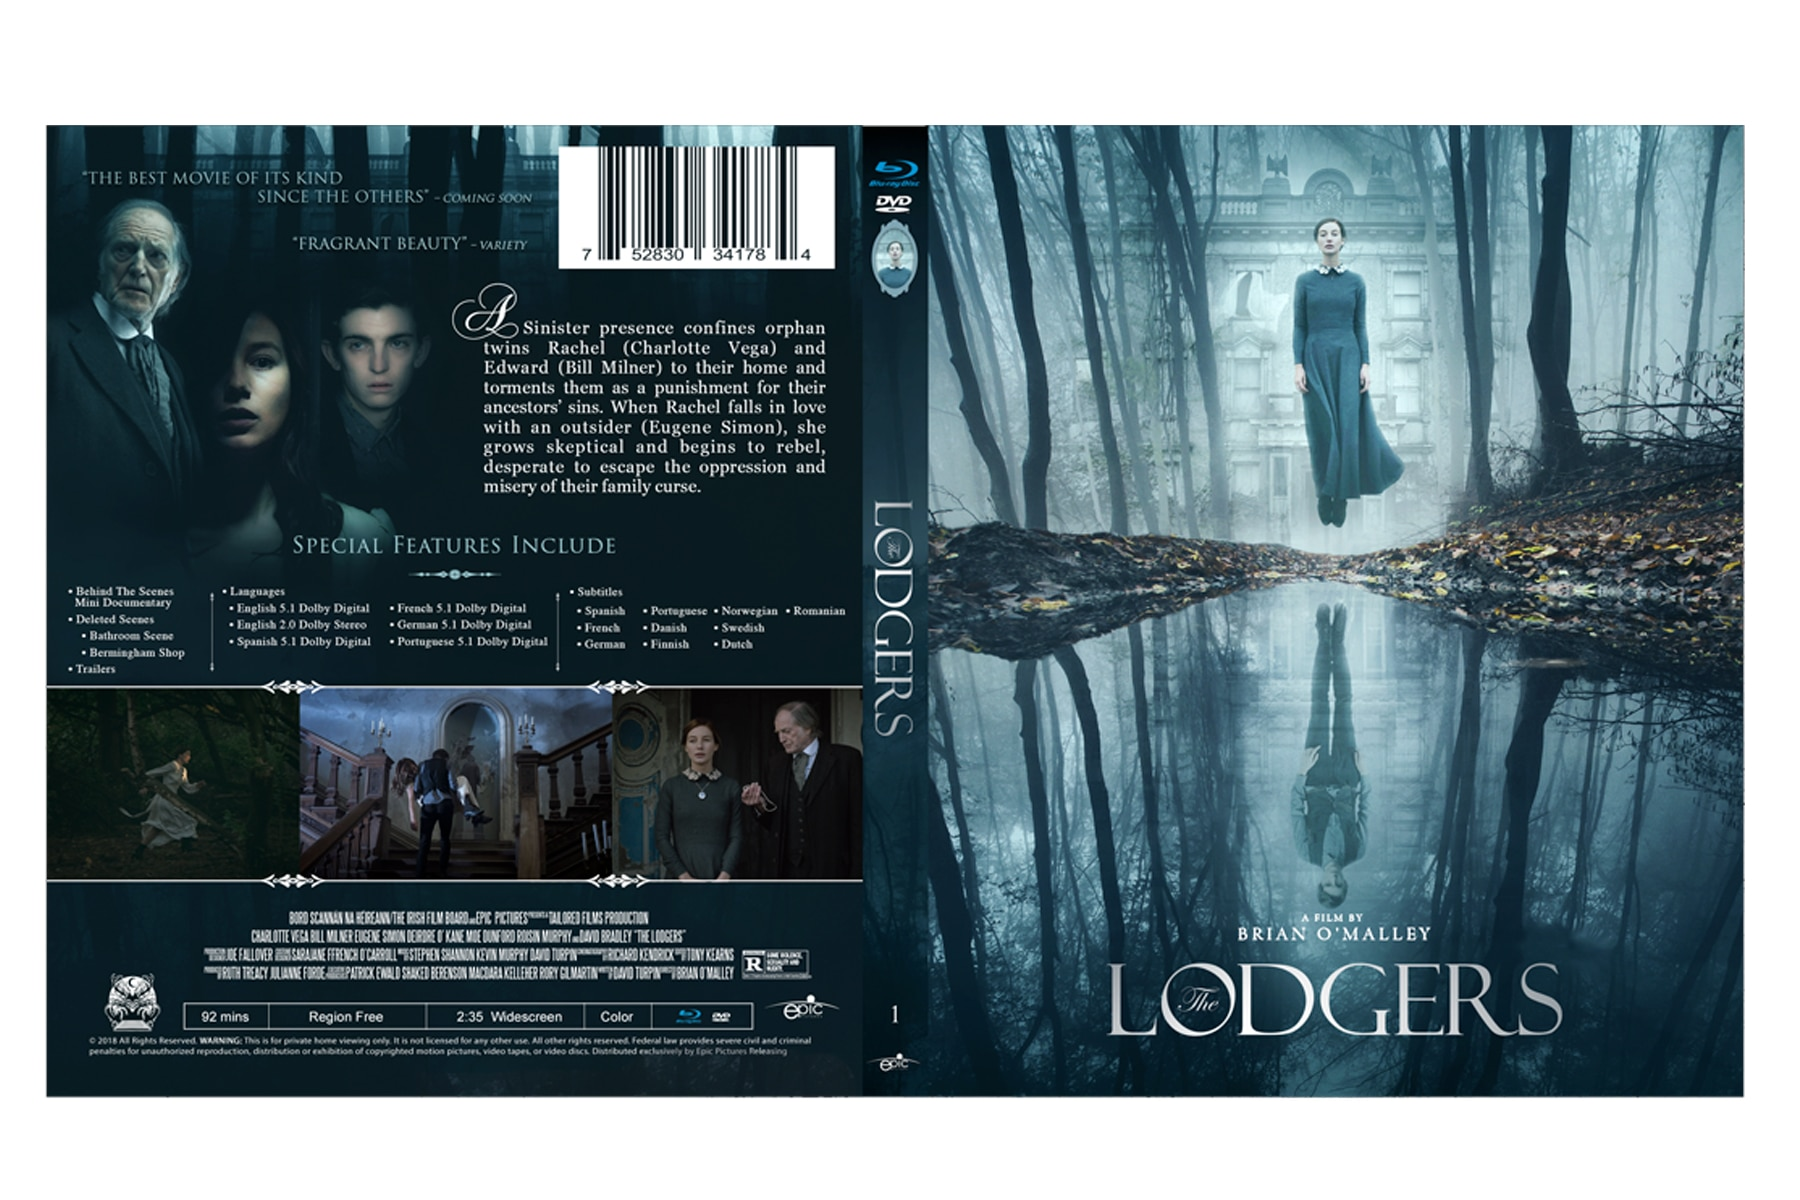 thelodgershomevideo 2 - Dread Central Presents: THE LODGERS Gets Home Video Release Date and Information